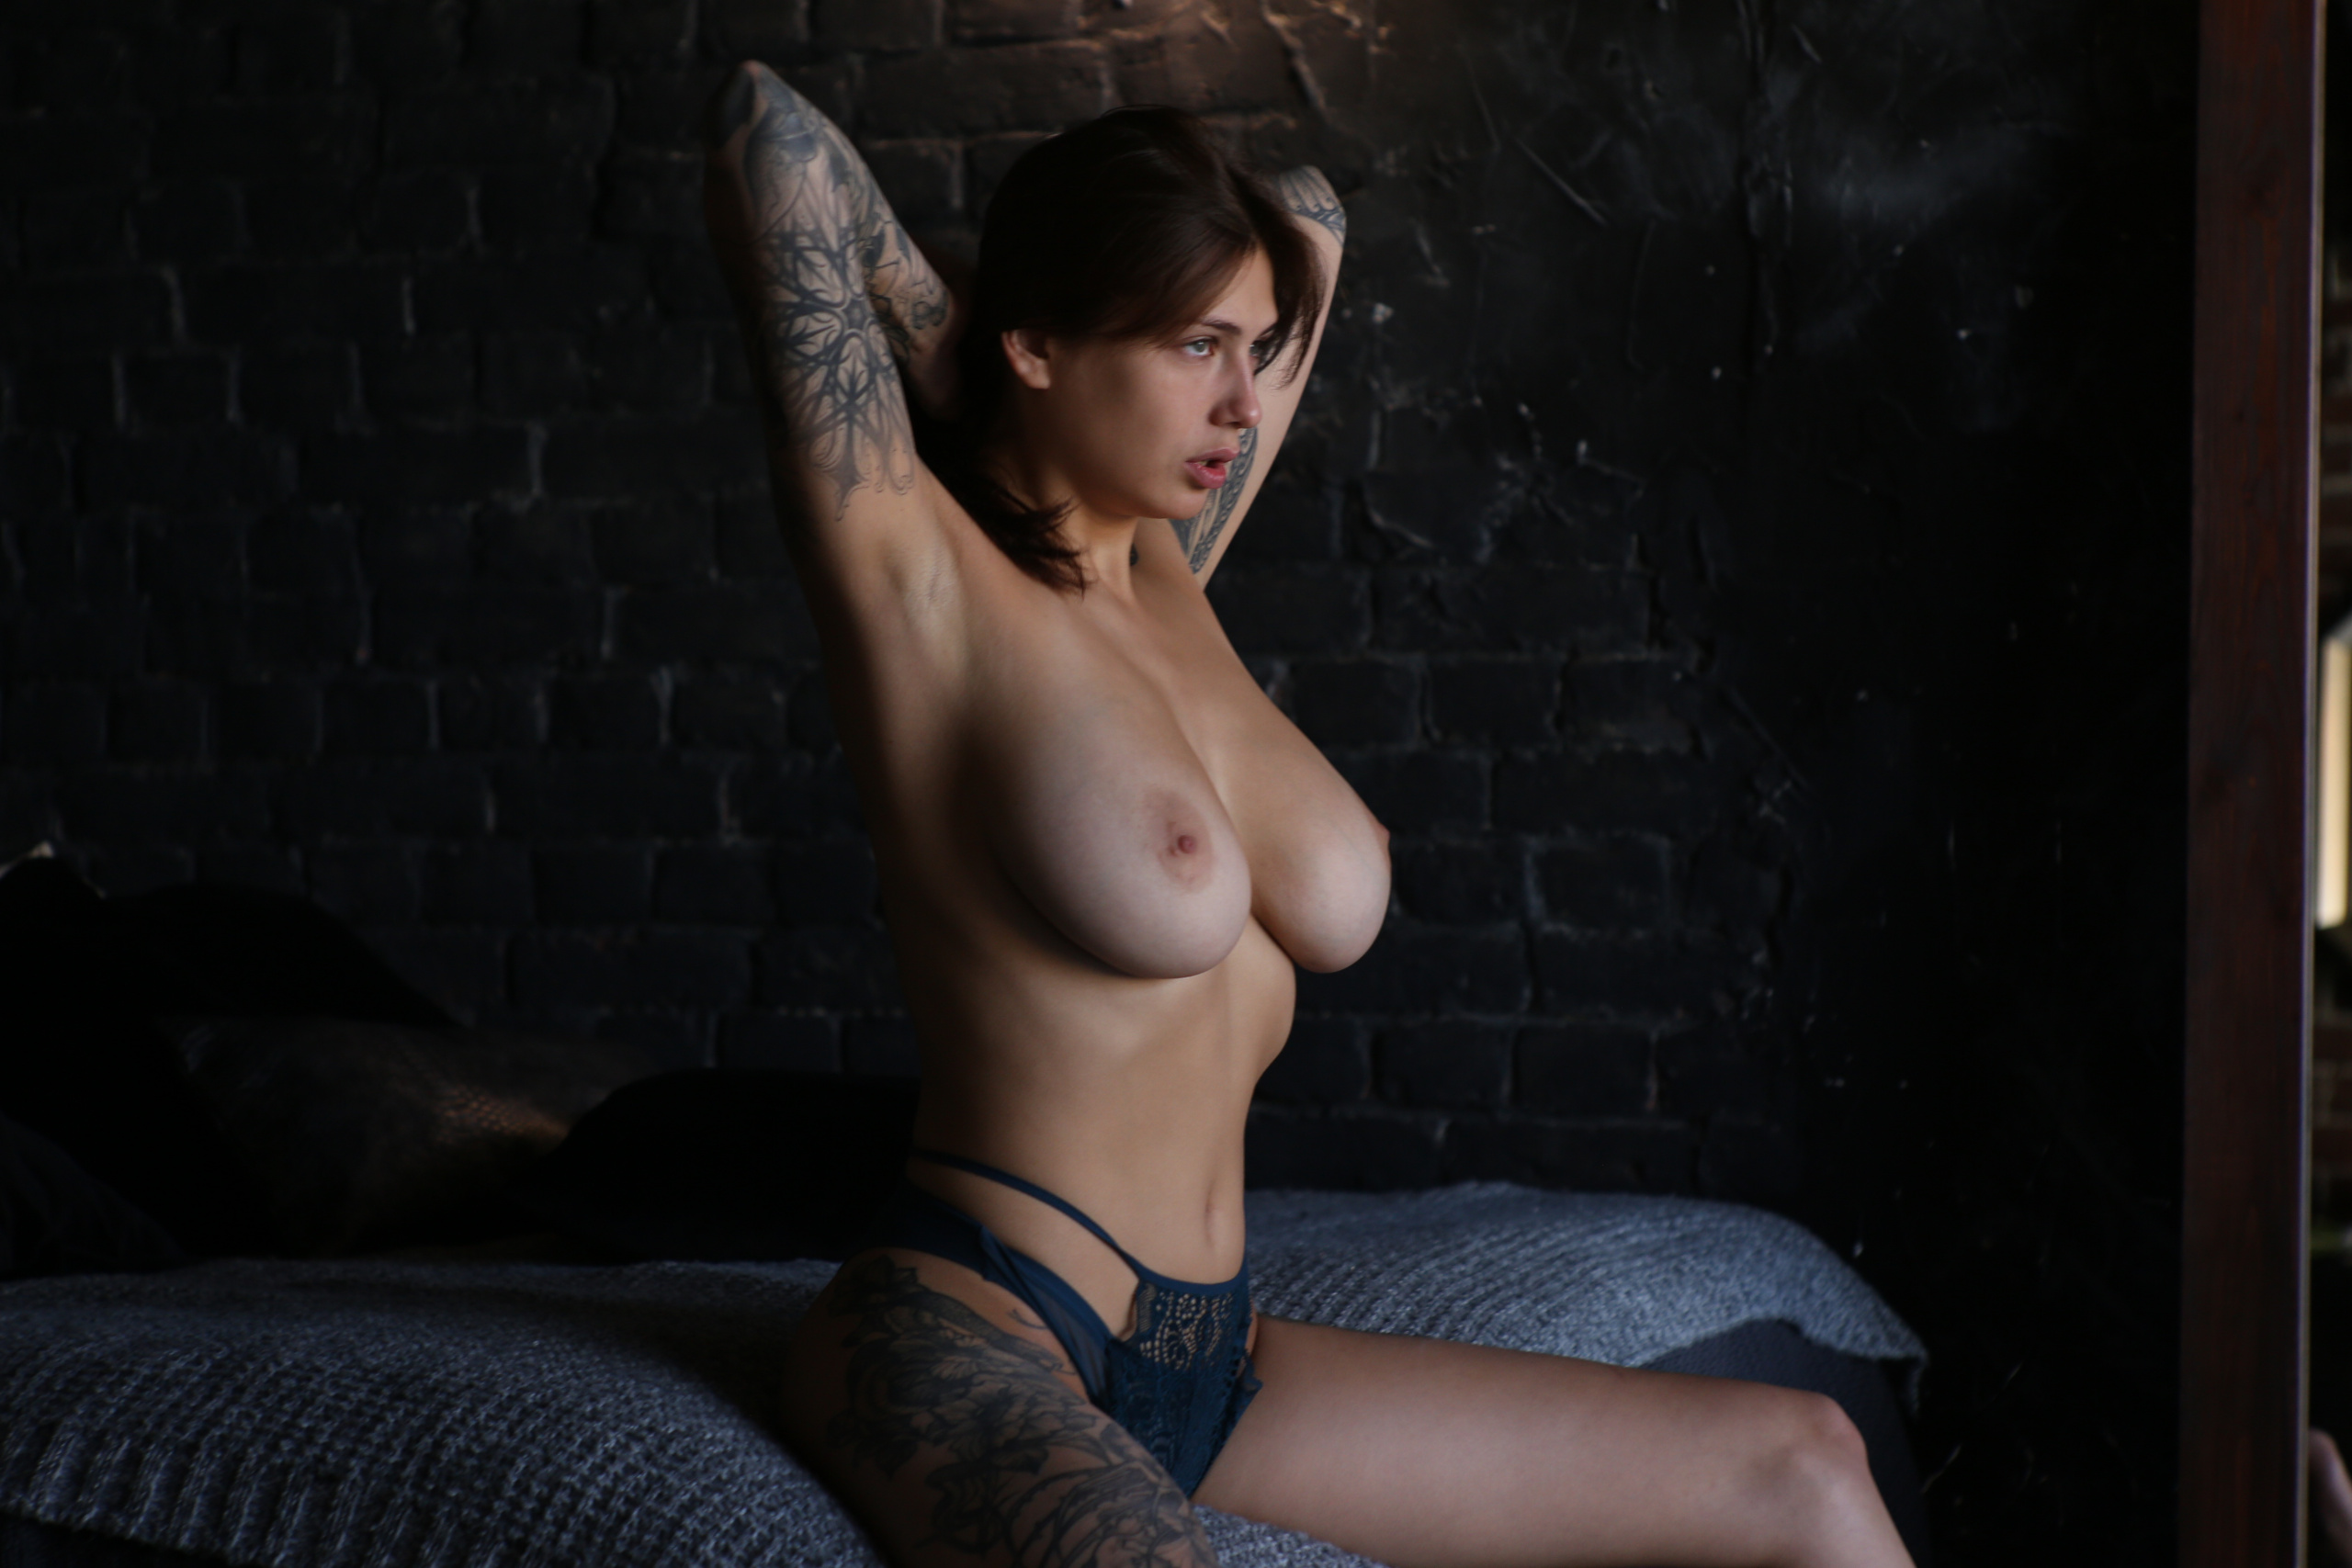 Studio portrait of tattoos on an overweight nude woman stock photo